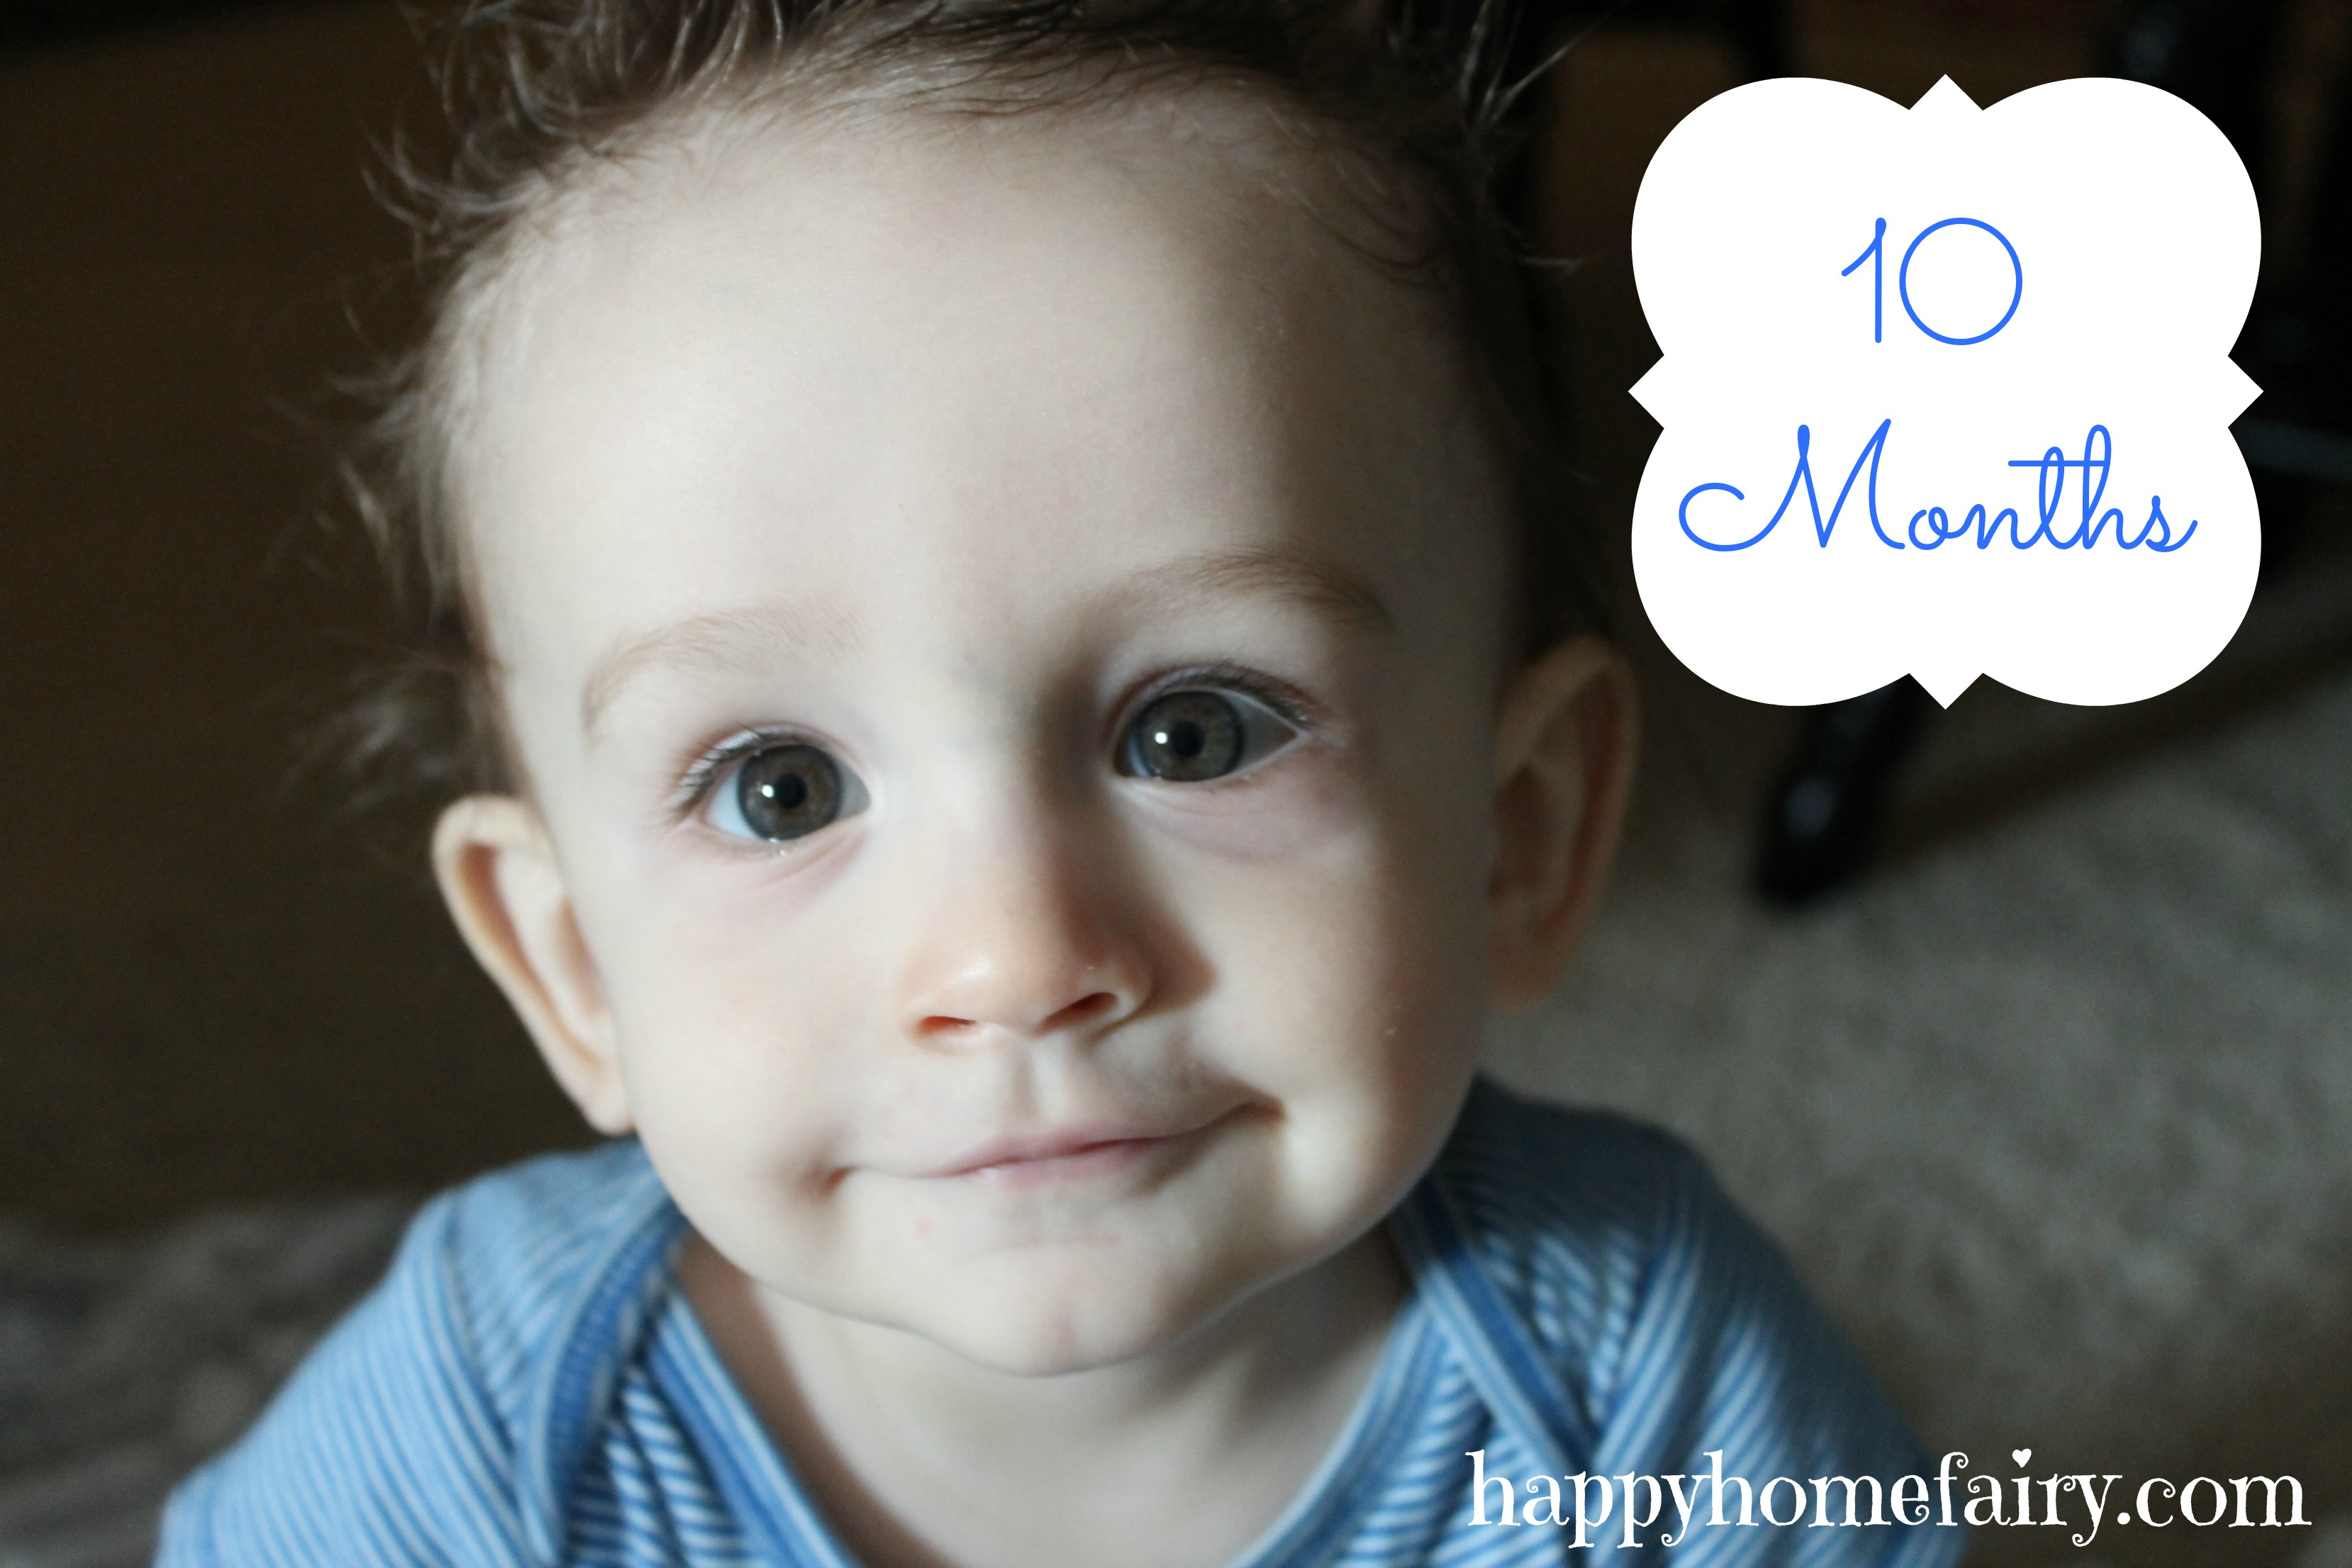 The mouth of a child: funny fairy words